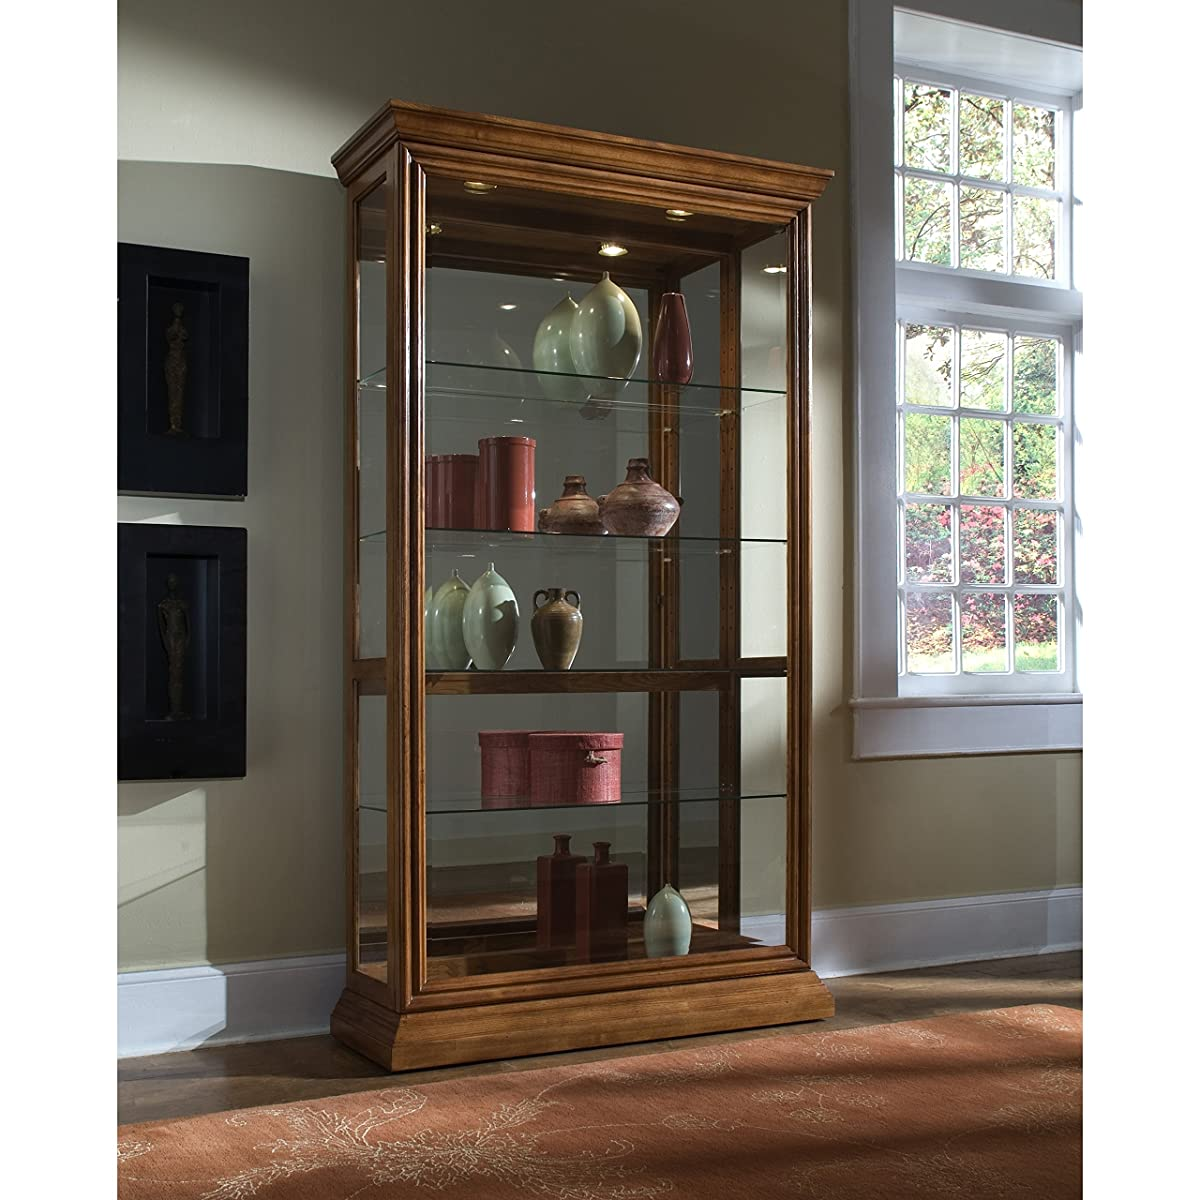 Sofaweb.com Golden Oak Two-Way Sliding Door Curio Cabinet